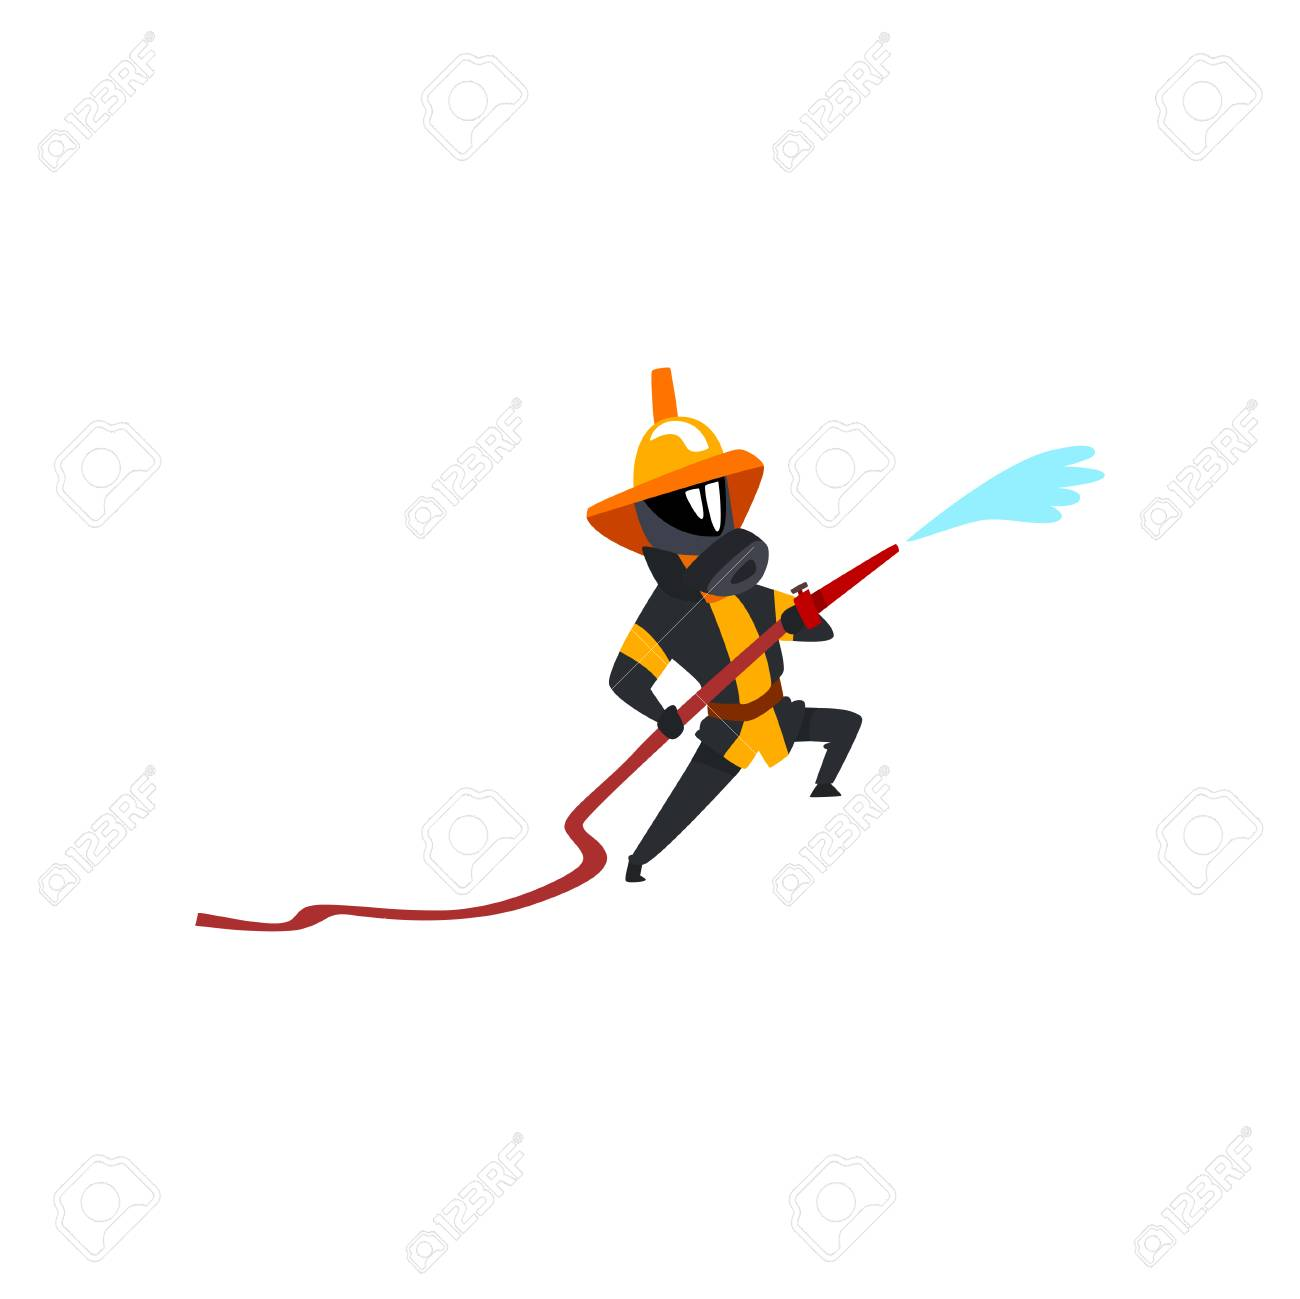 Fireman spraying water using hose, firefighter character in uniform and mask at work vector Illustration on a white background - 114779457